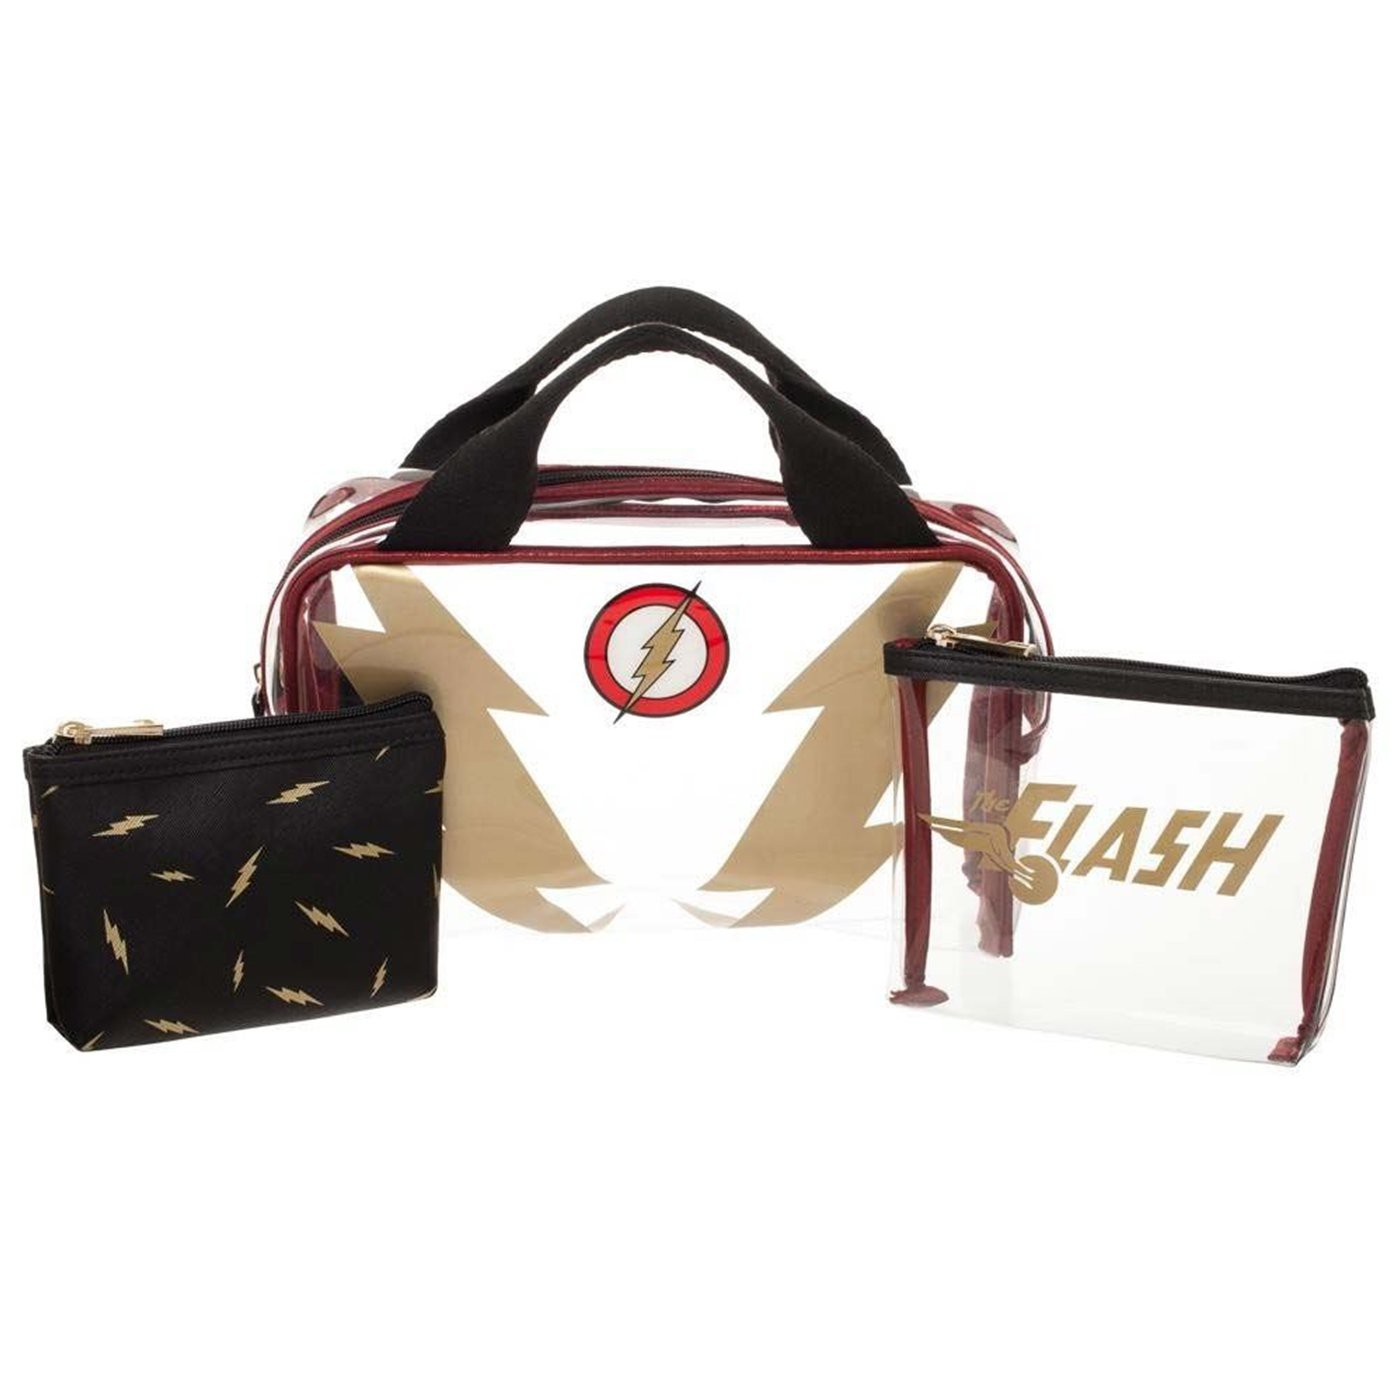 Flash 3 Piece Travel Set